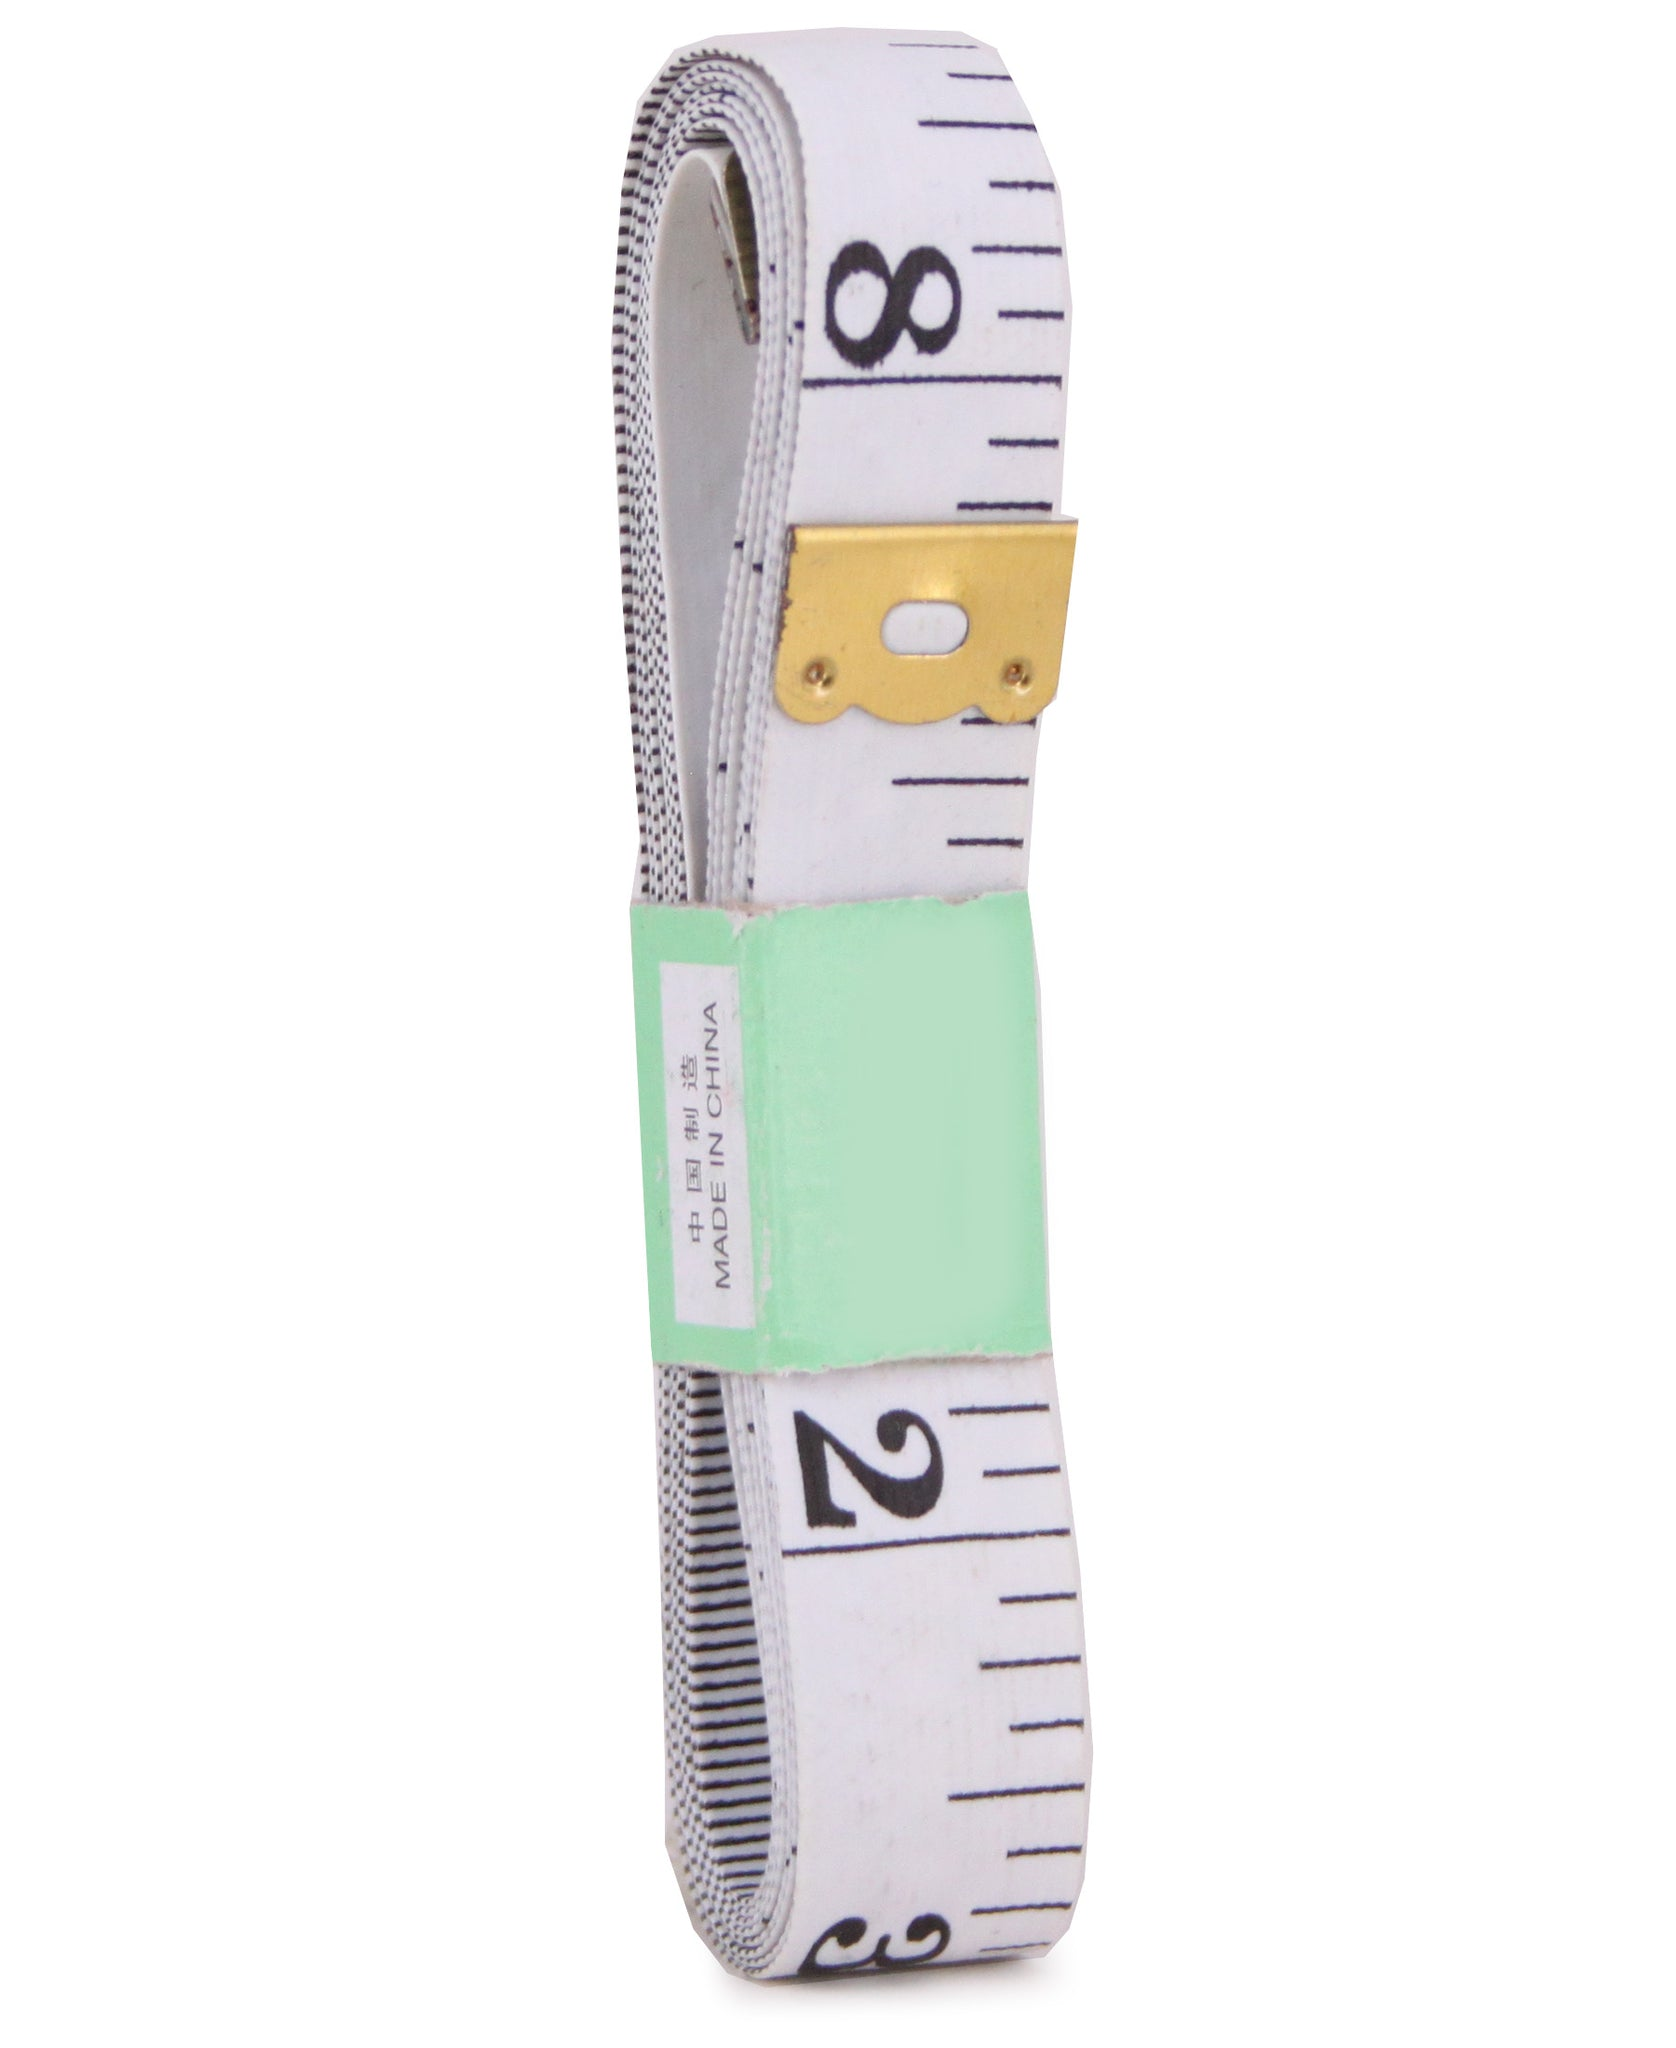 Tailors Measuring Tape - White